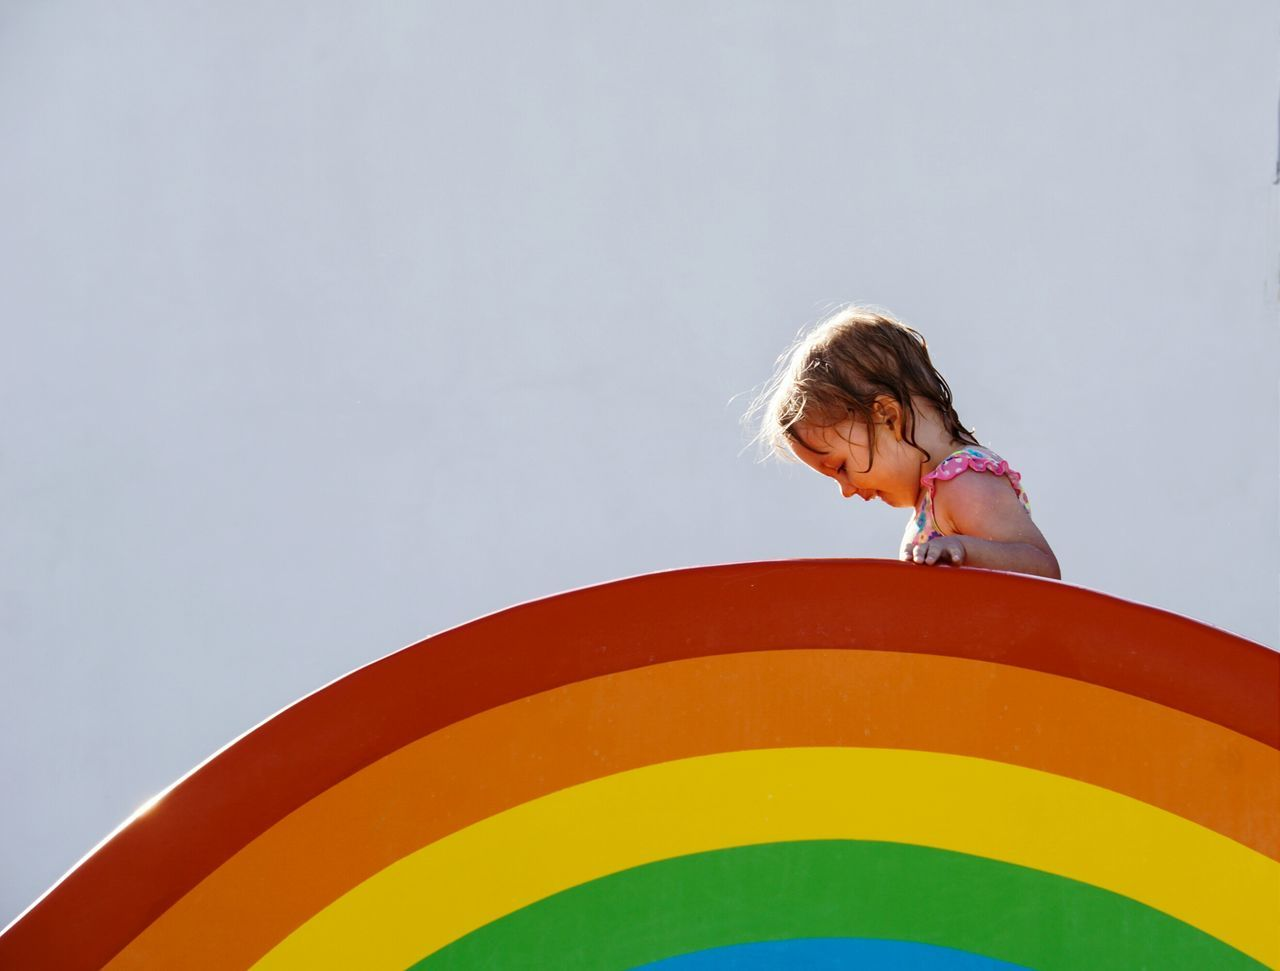 Colour Of Life Rainbow Beachphotography Child Minimalism Picturing Individuality Pivotal Ideas Festival Season The Magic Mission People And Places TakeoverContrast Enjoy The New Normal Uniqueness EyeEm Diversity Art Is Everywhere